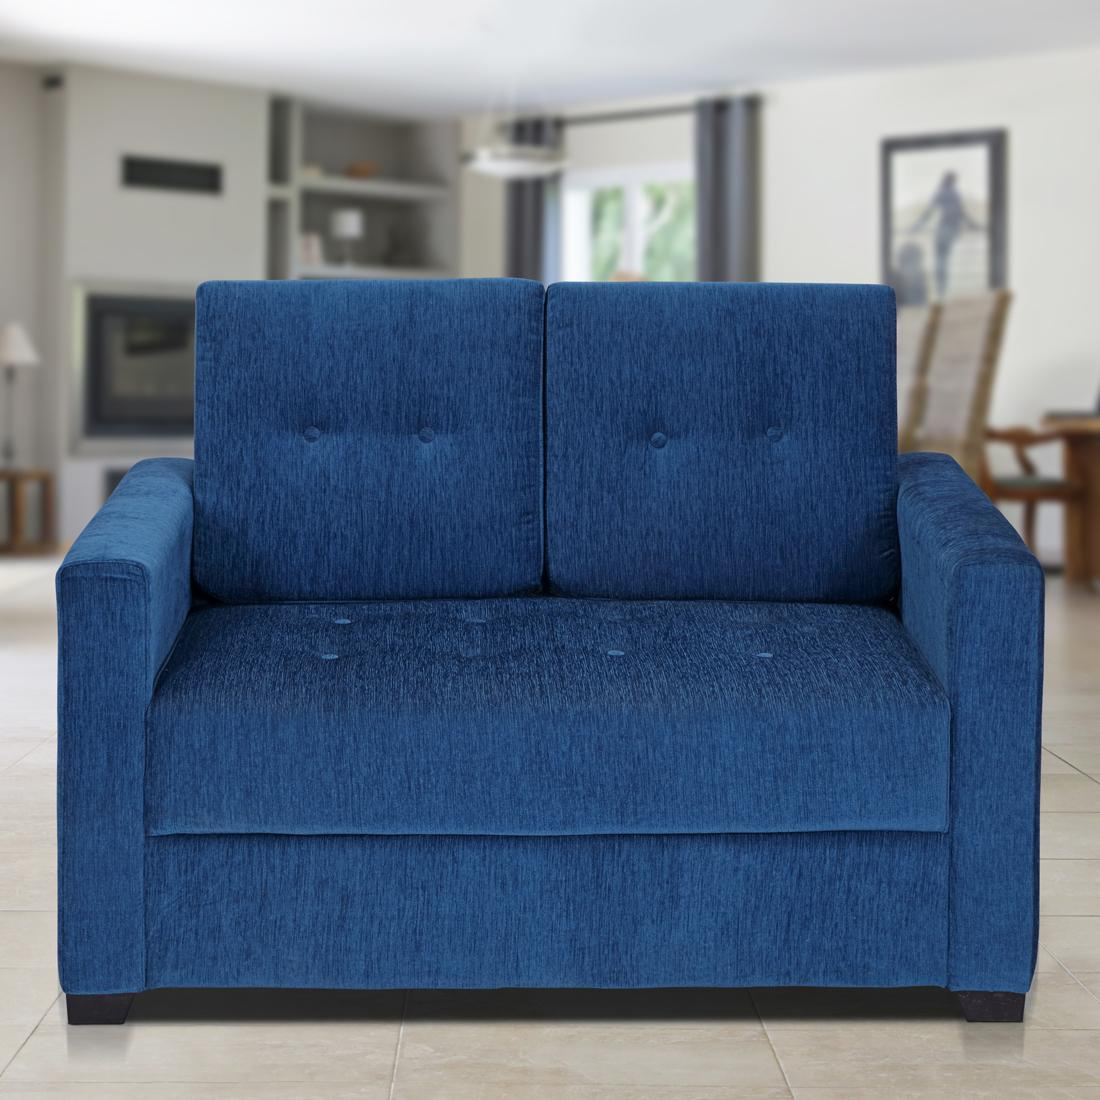 Buy Jacob Fabric 3 2 Seater Sofa Set In Blue Color Online Evok